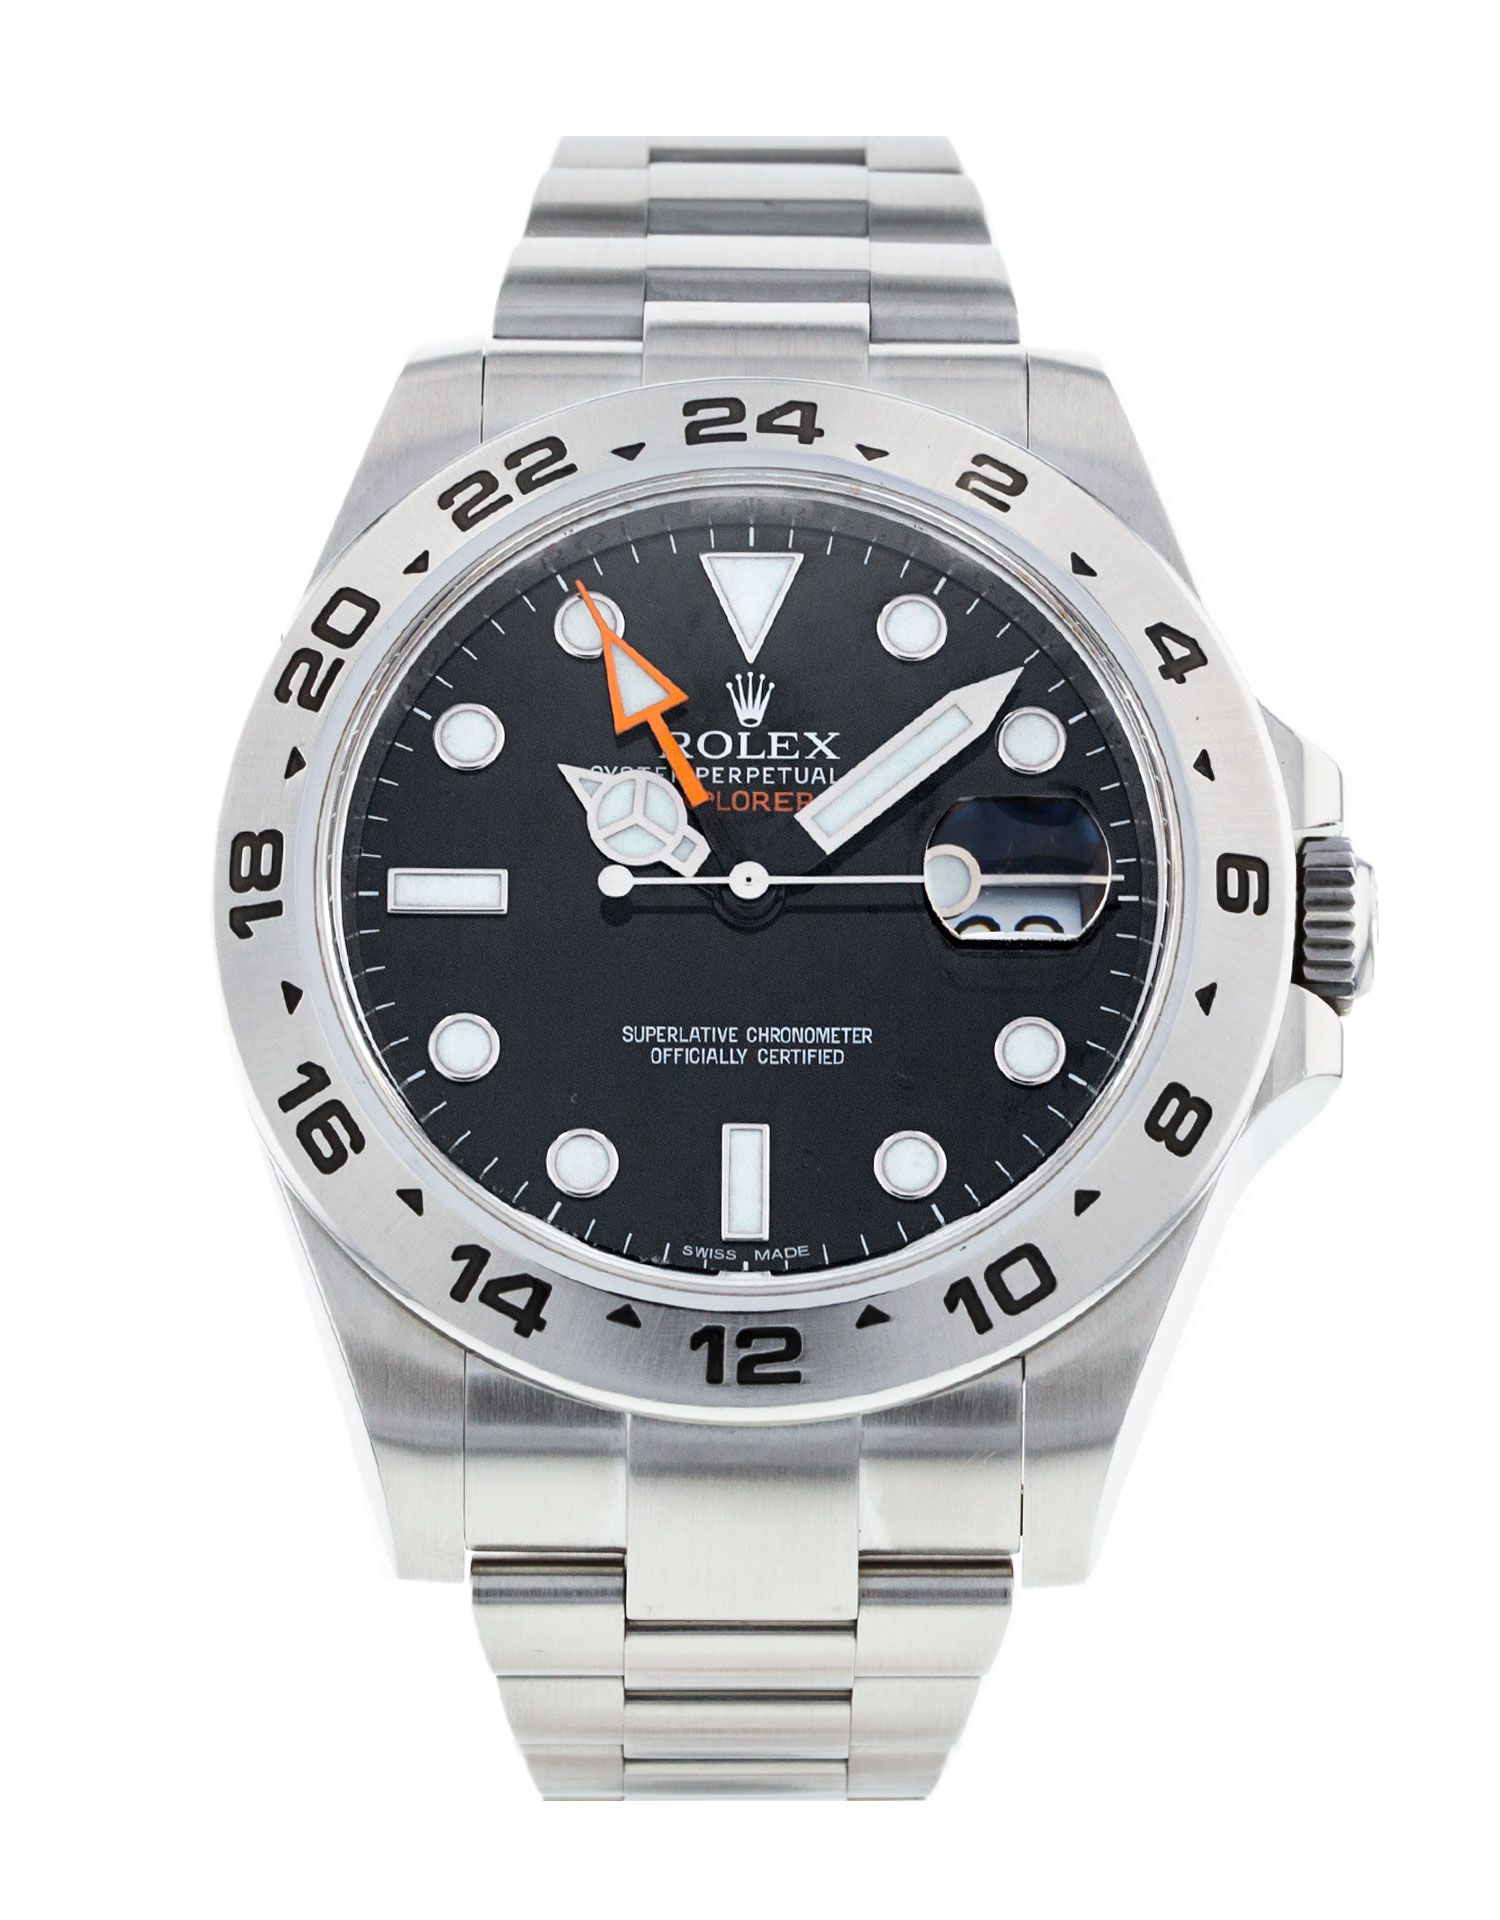 What's So Special About This Rolex Explorer II Ref 216570? Glad You Asked